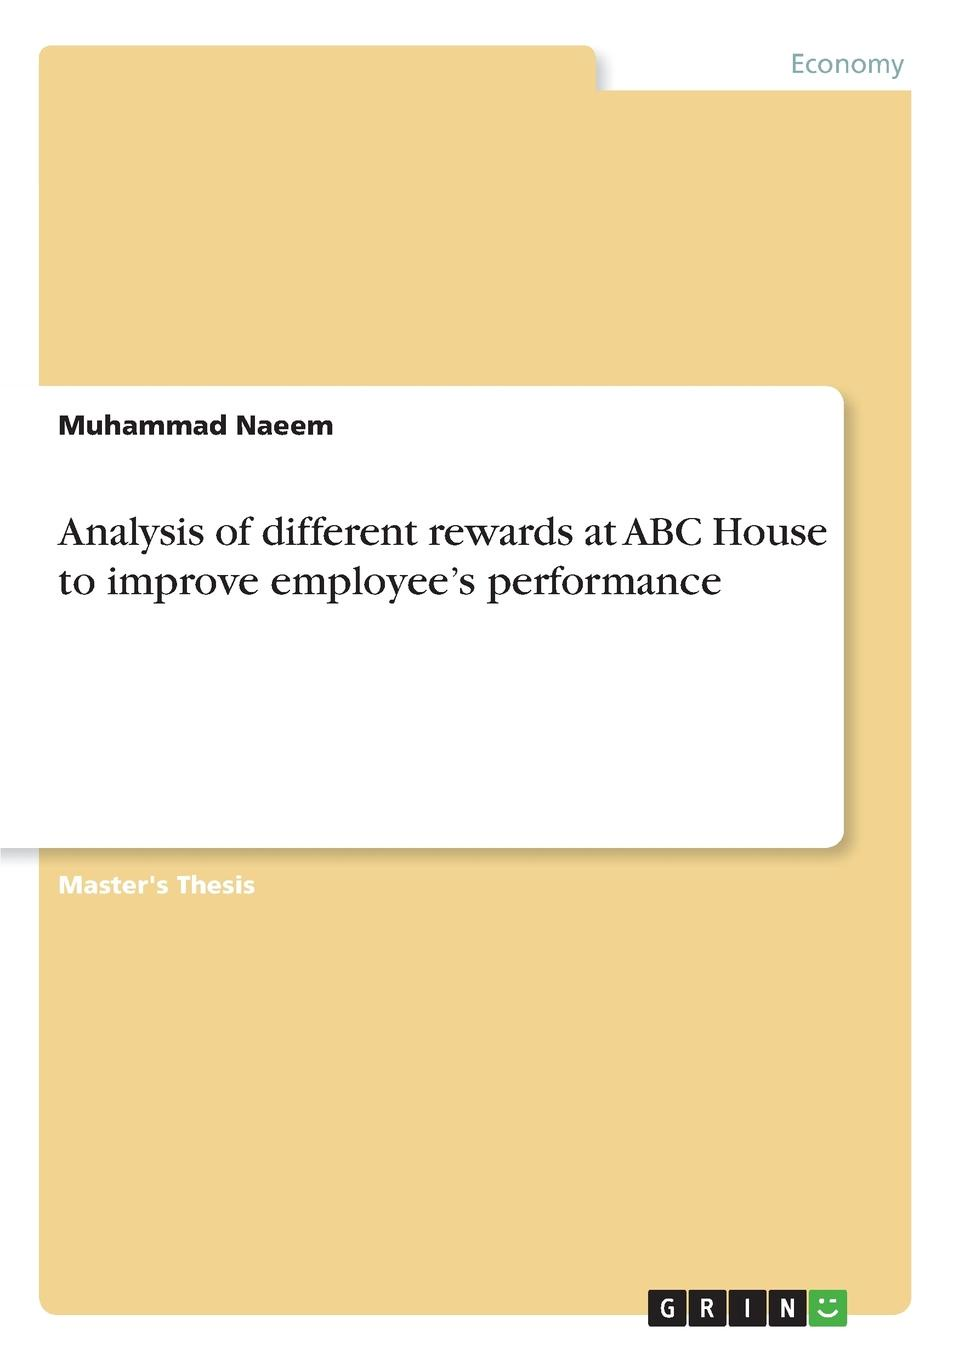 Muhammad Naeem Analysis of different rewards at ABC House to improve employee.s performance muhammad naeem intrinsic versus extrinsic motivation and the effects of those types on employees